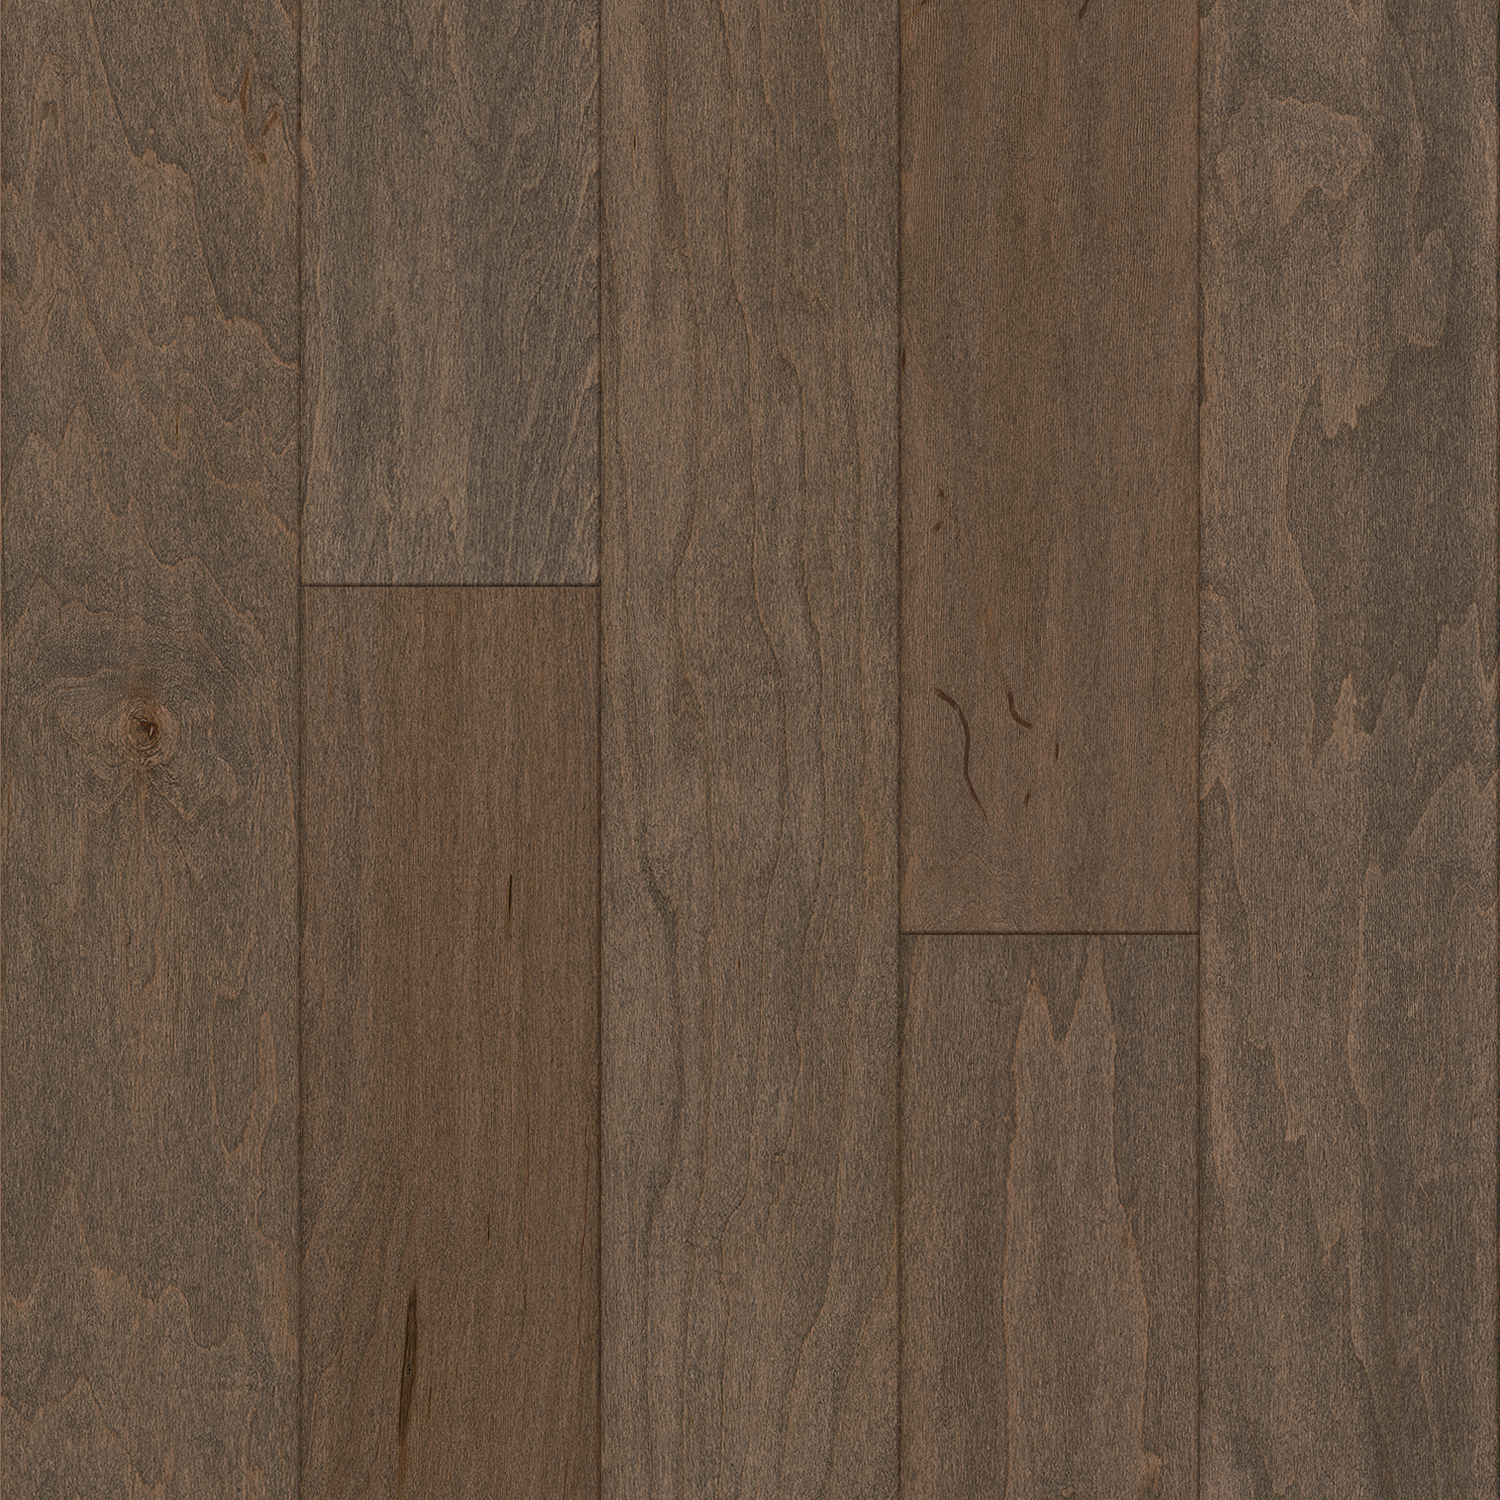 Woodson Bend Old Town Engineered Hardwood EMWB53L02HEE